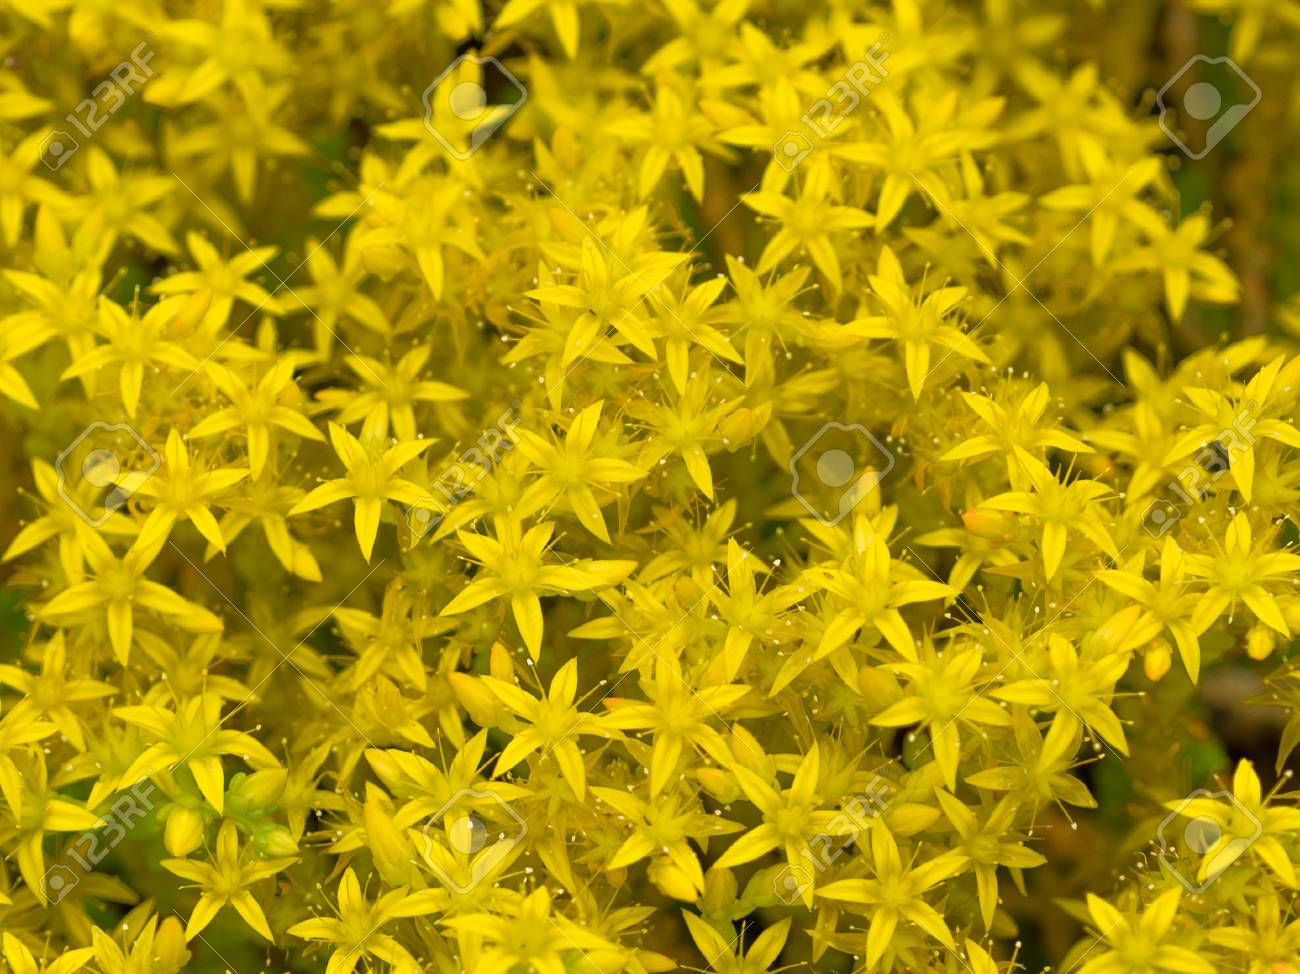 Beautiful bright yellow flowers groundcover stonecrop varieties beautiful bright yellow flowers groundcover stonecrop varieties sultan in the garden on a summer morning stock mightylinksfo